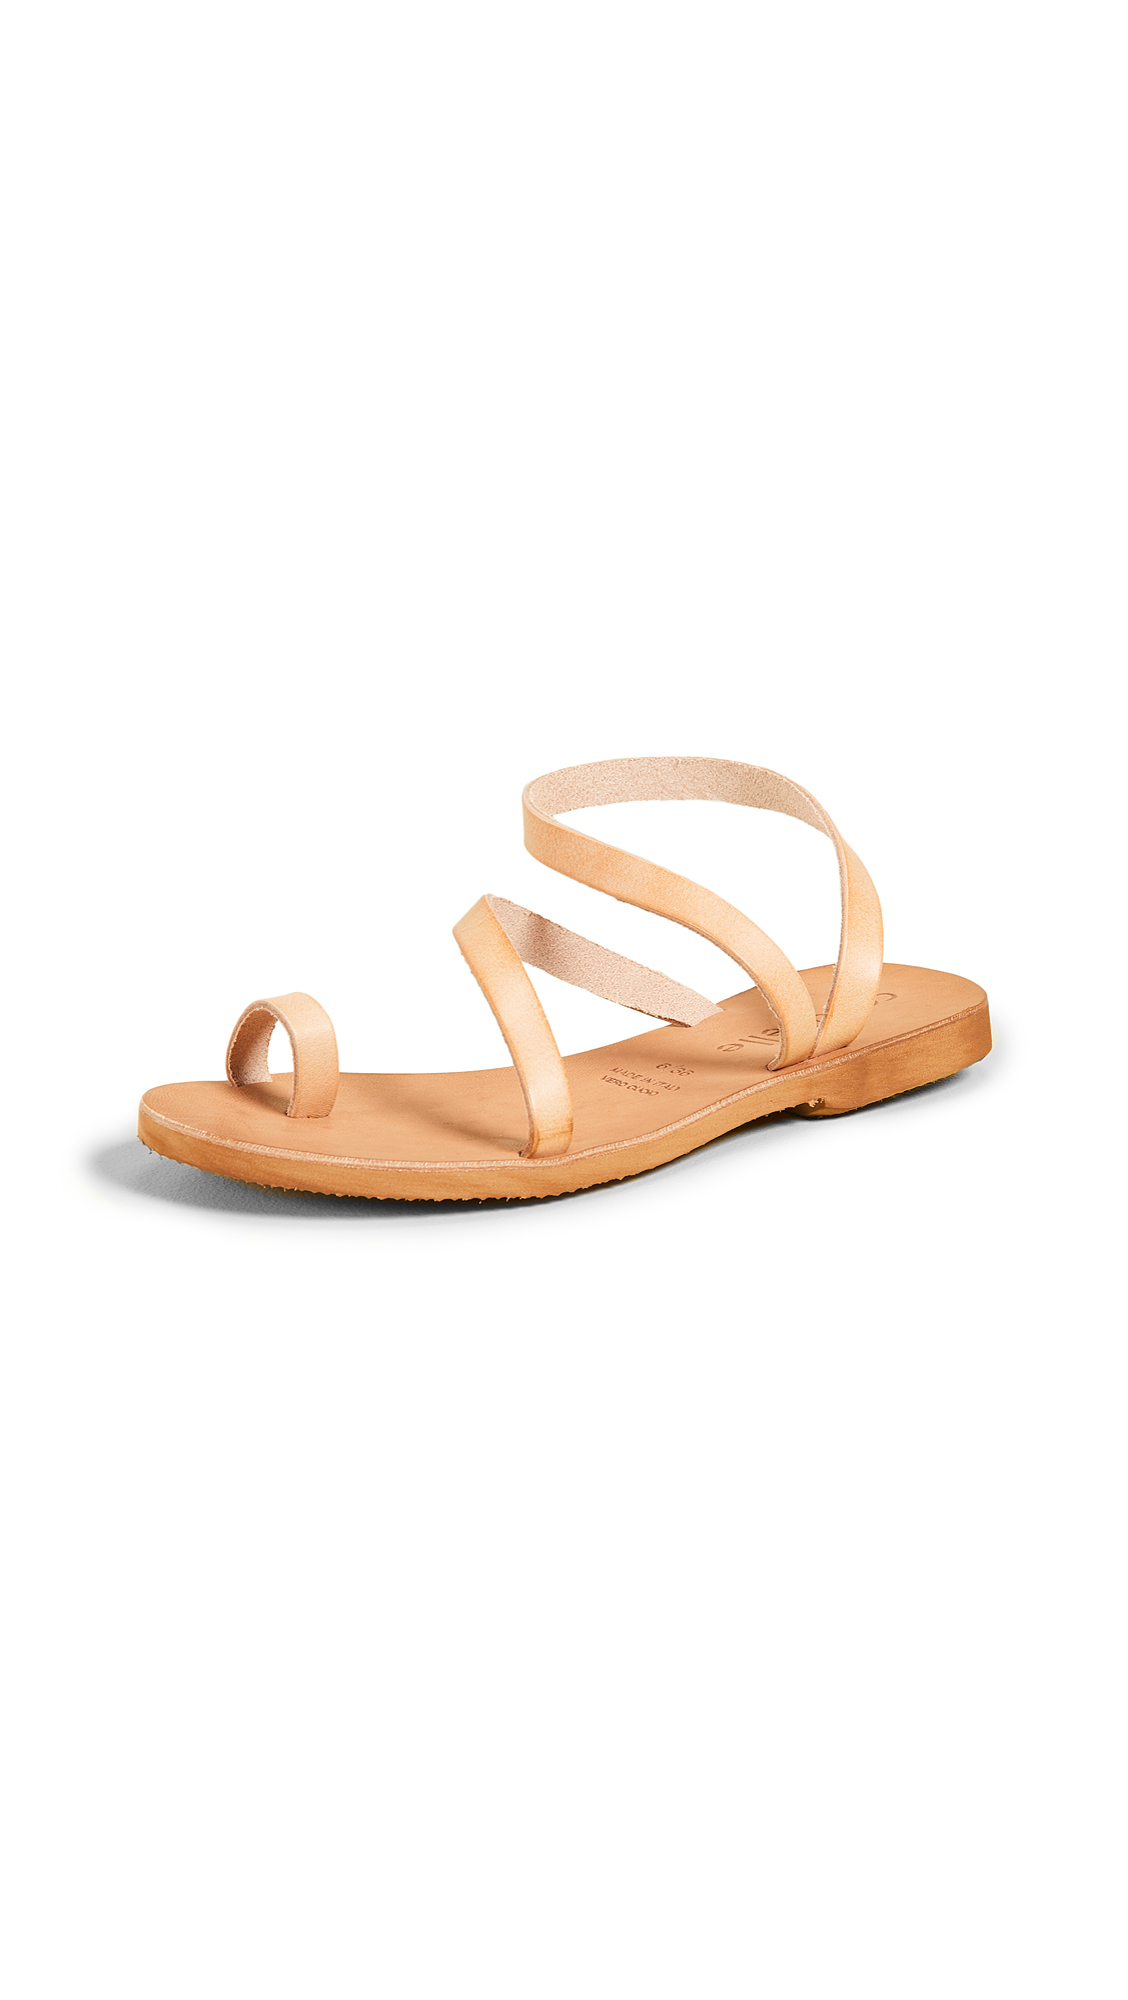 380dab7b9887 Cocobelle Crescent Strappy Sandals In Natural